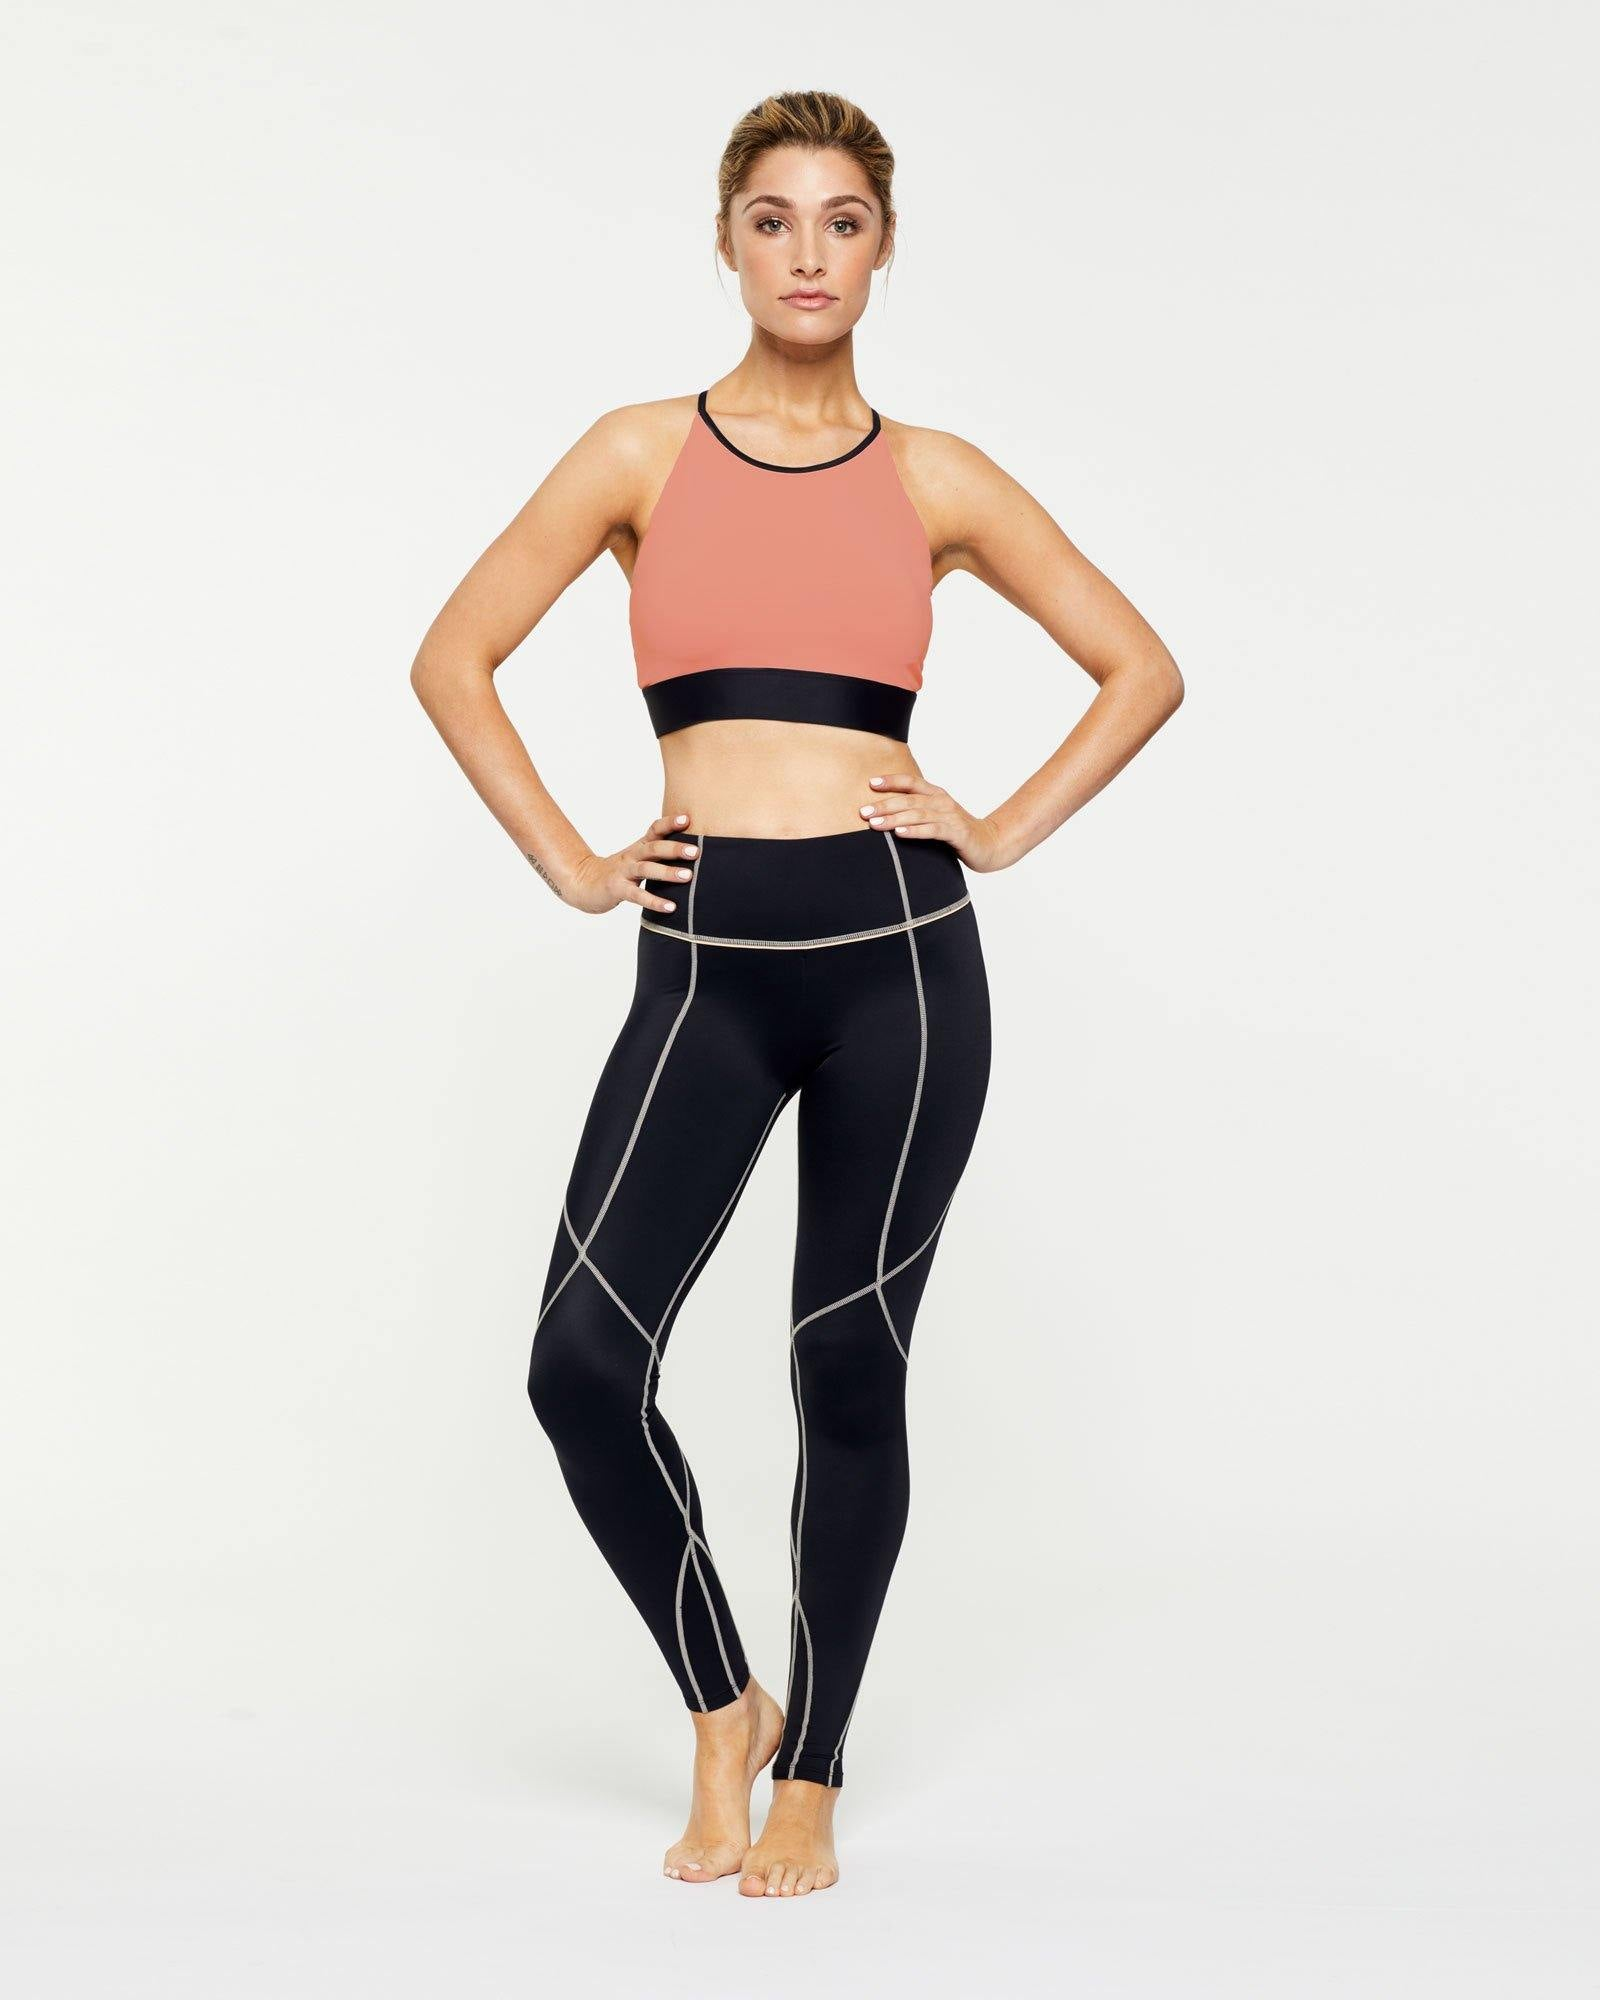 Warrior Trapezius Halter Crop Top peach with contrast black binding worn with Vastus mid waist full length legging, front view